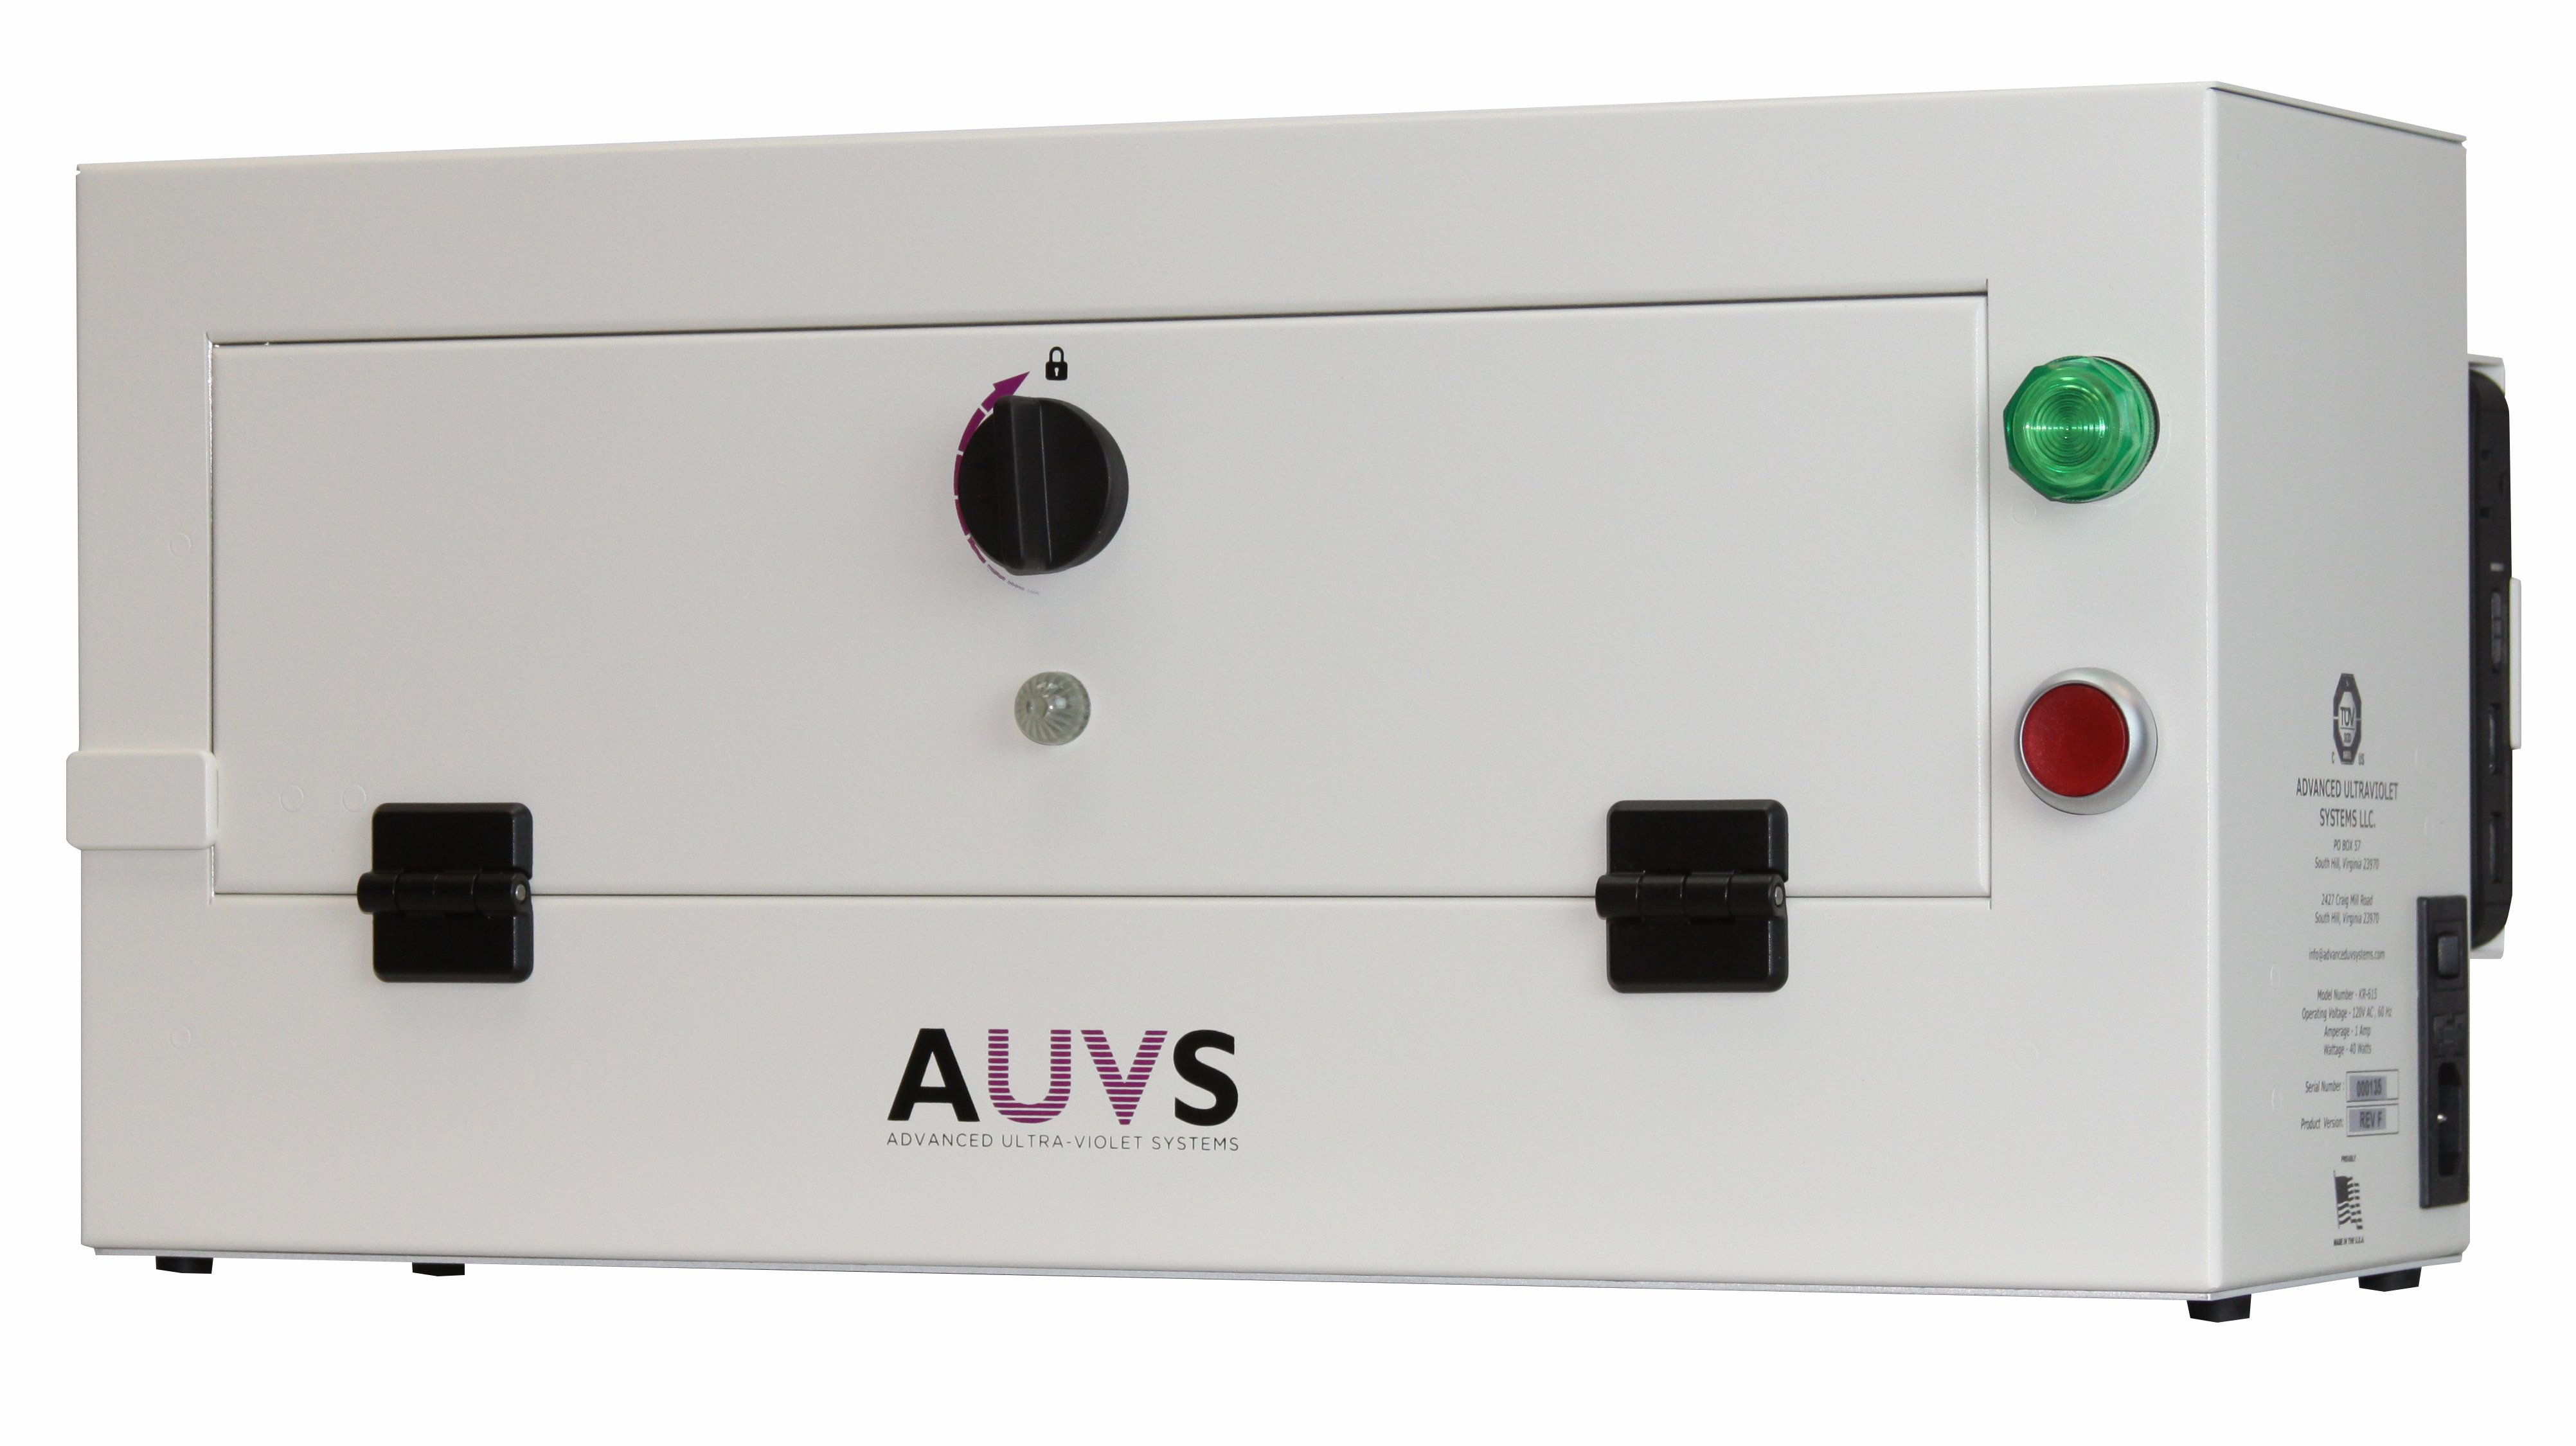 UV disinfection device